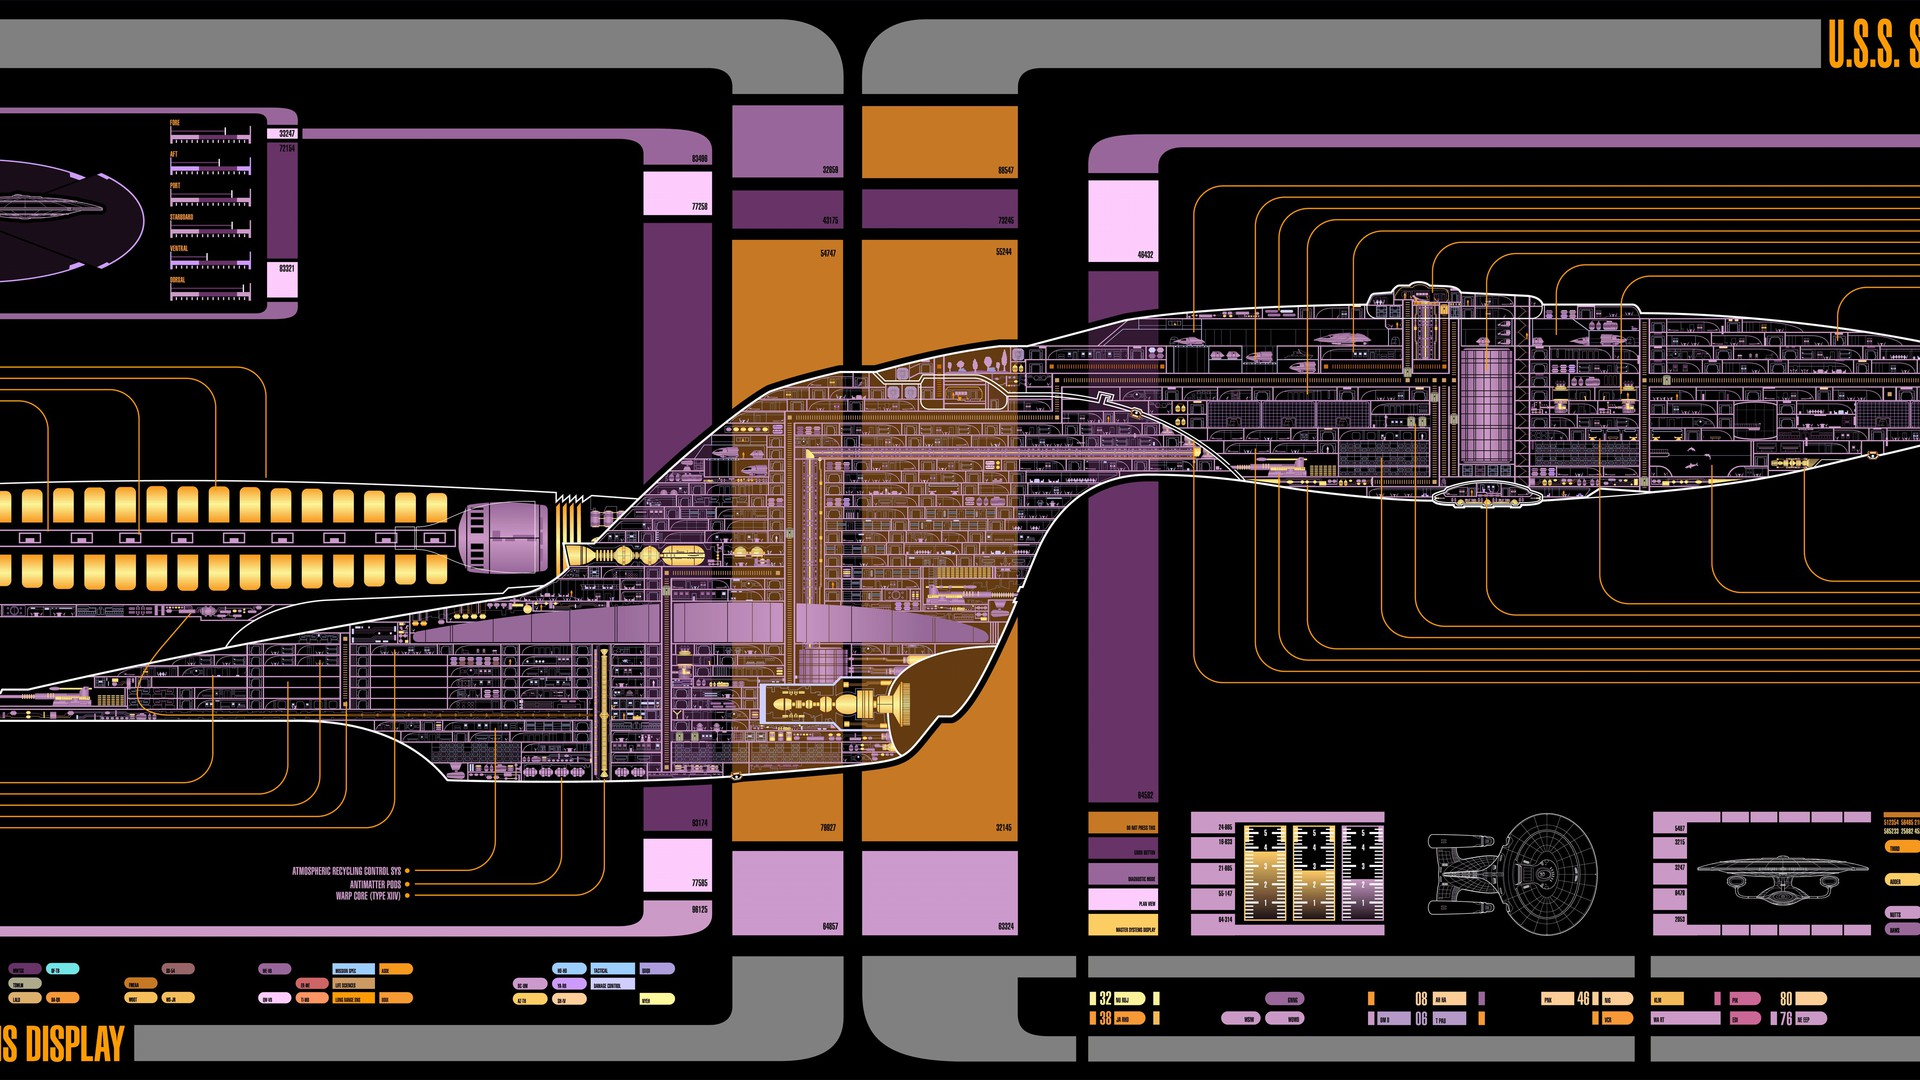 Star Trek Iphone X Wallpaper Star Trek The Next Generation Voyager Final Schematics